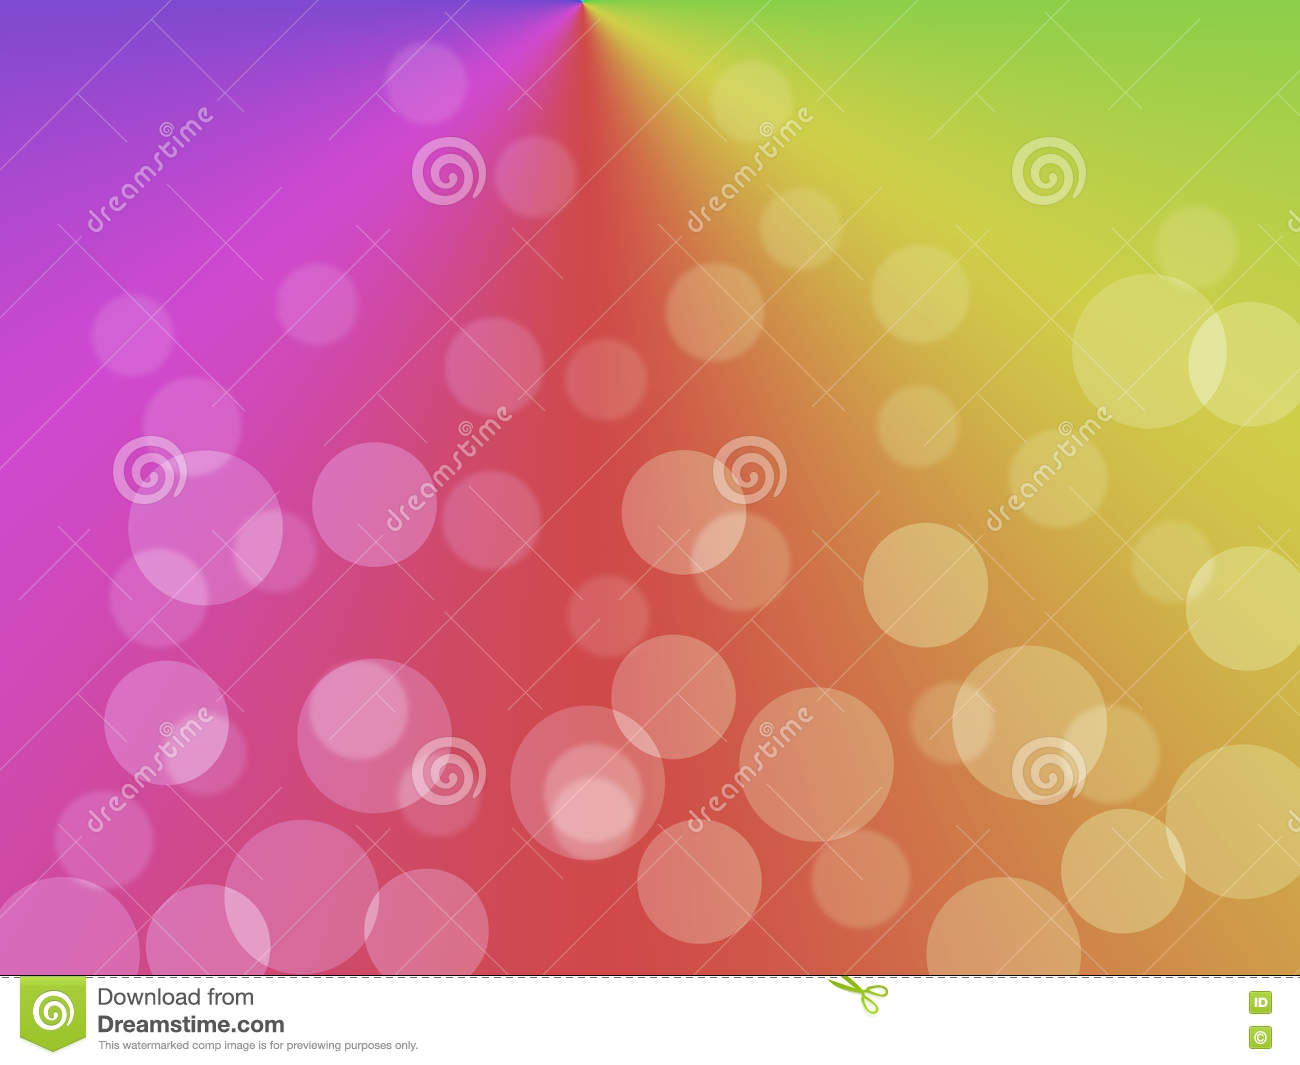 Beautiful Blurred Colorful Background Abstract Gradient Desktop Wallpaper